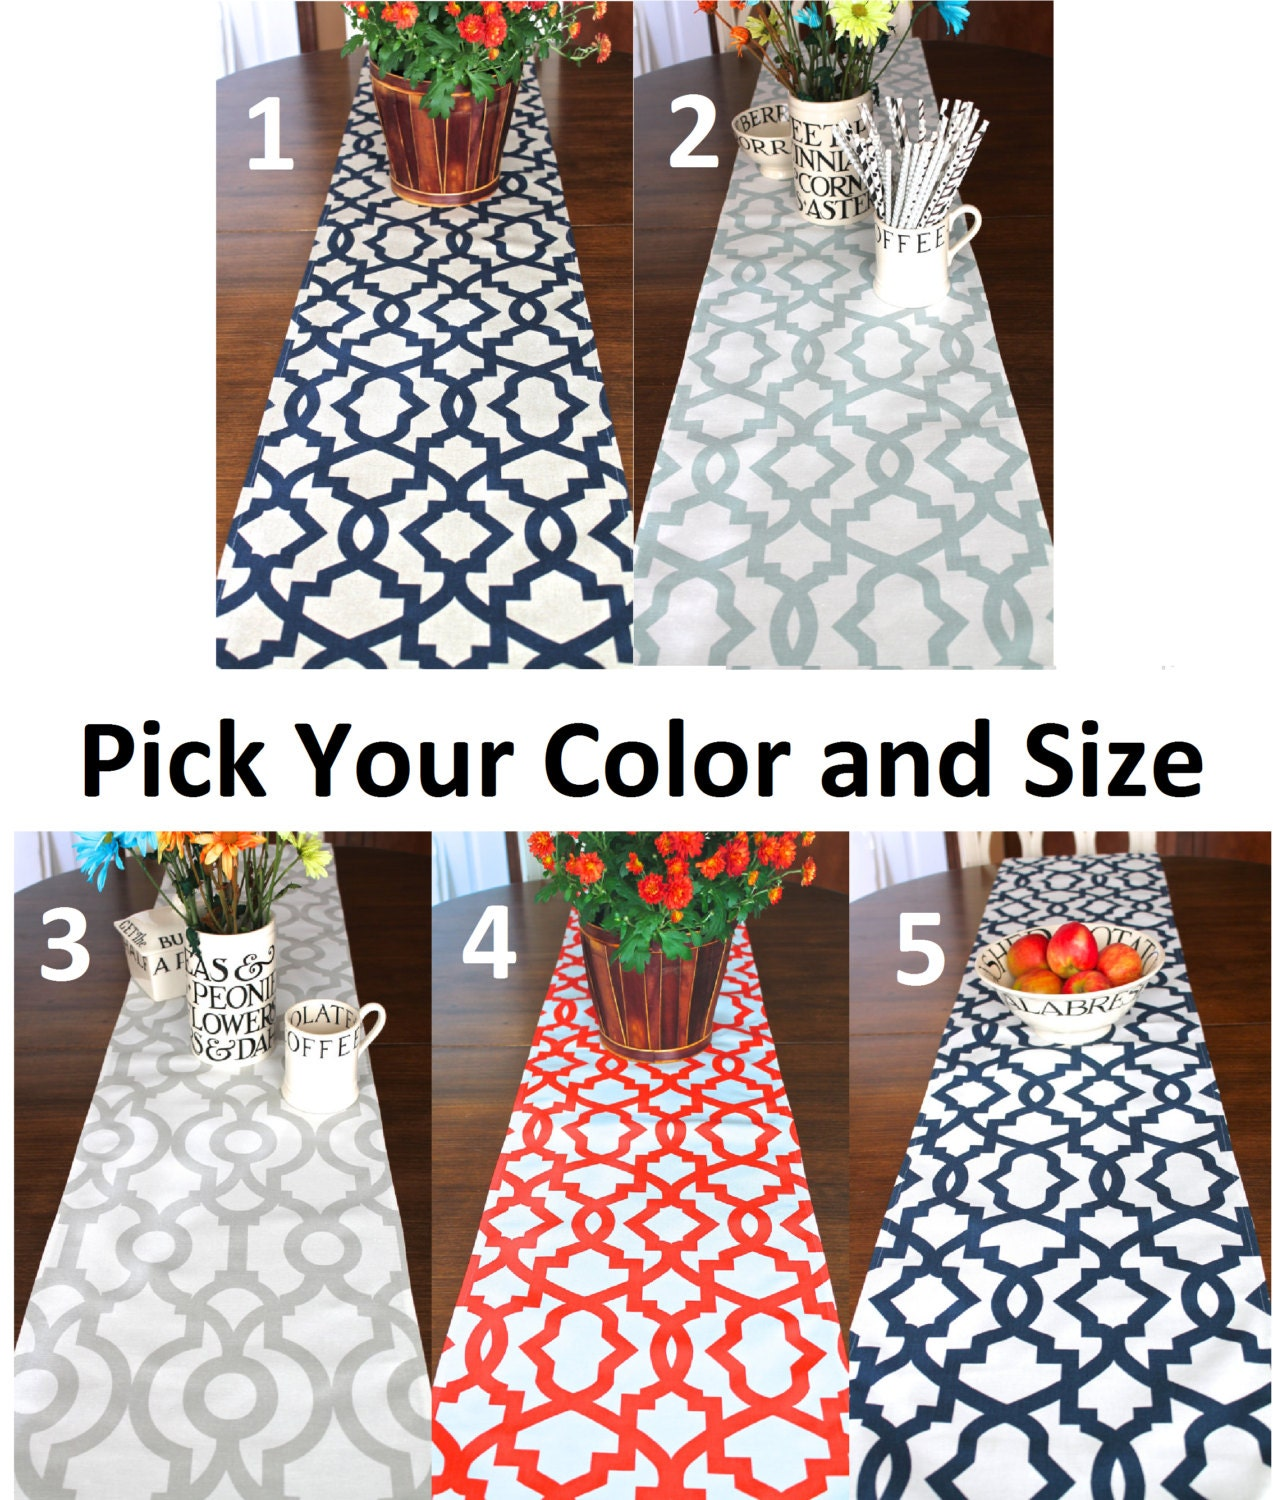 Kitchen Makeover For About 100 Give Your Orange Oak: TABLE RUNNER NAVY Blue Tan Khaki Red Orange White Spa Blue